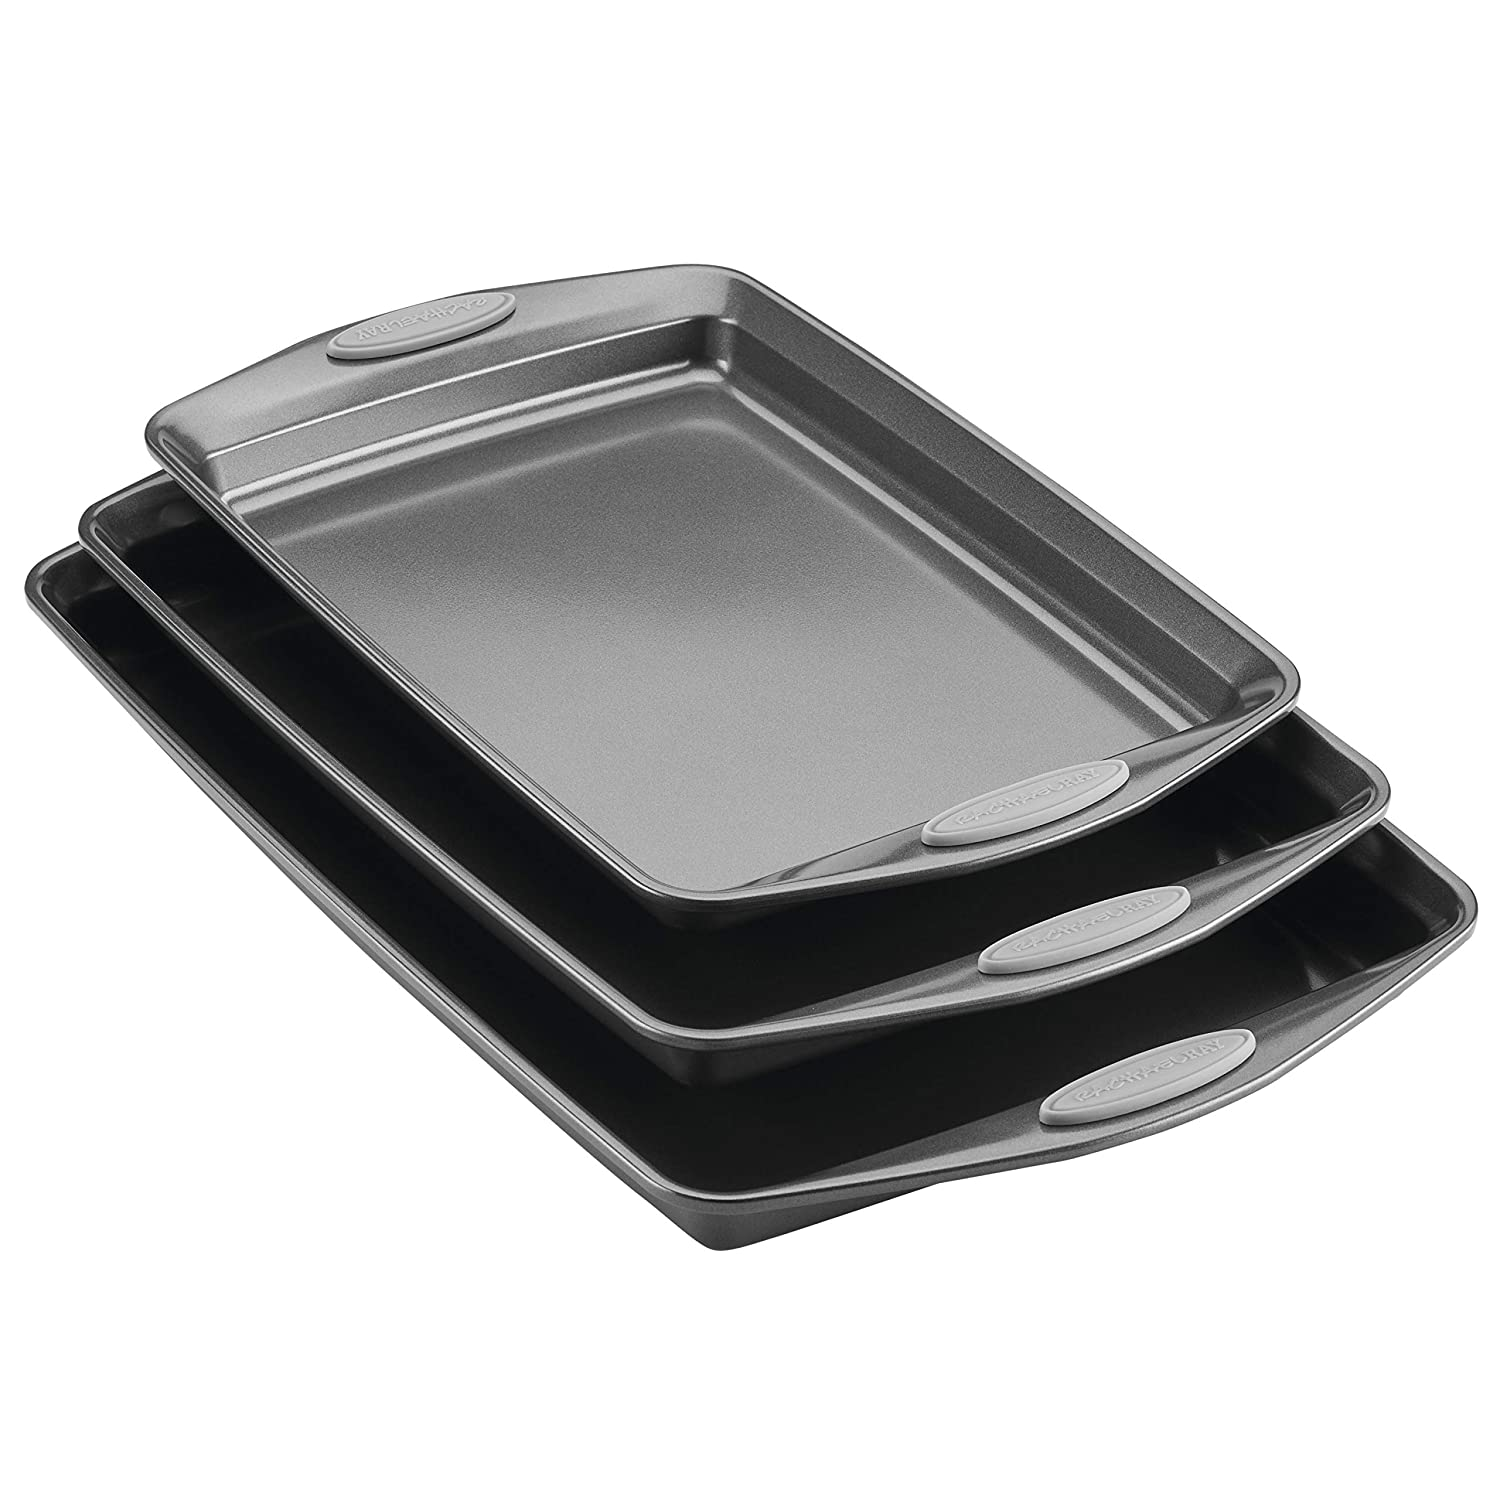 Rachael Ray Nonstick Bakeware Cookie Pan Set, 3-Piece, Gray with Sea Salt Gray Silicone Grips